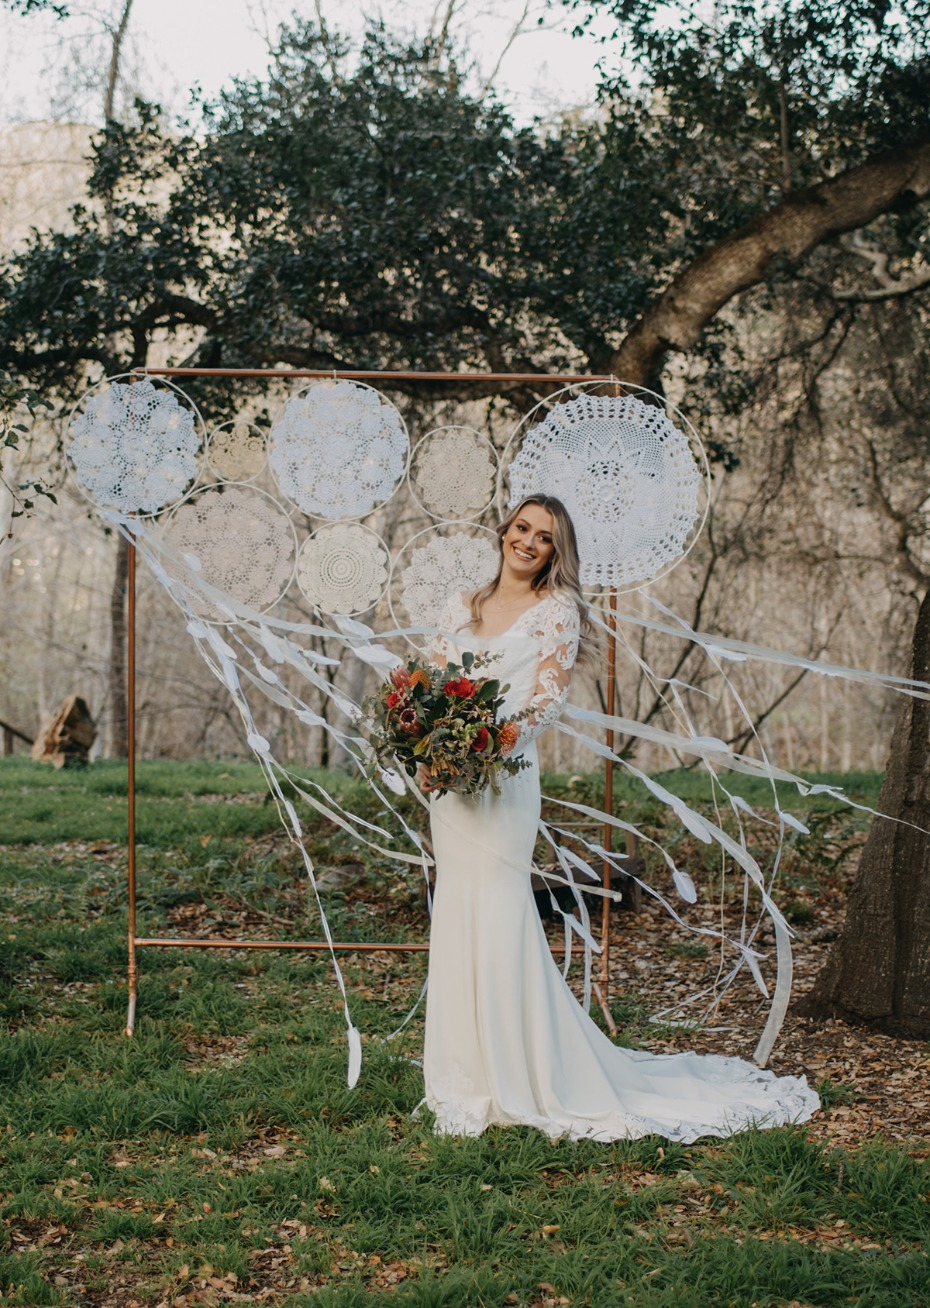 copper pipe and doily dreamcatcher backdrop